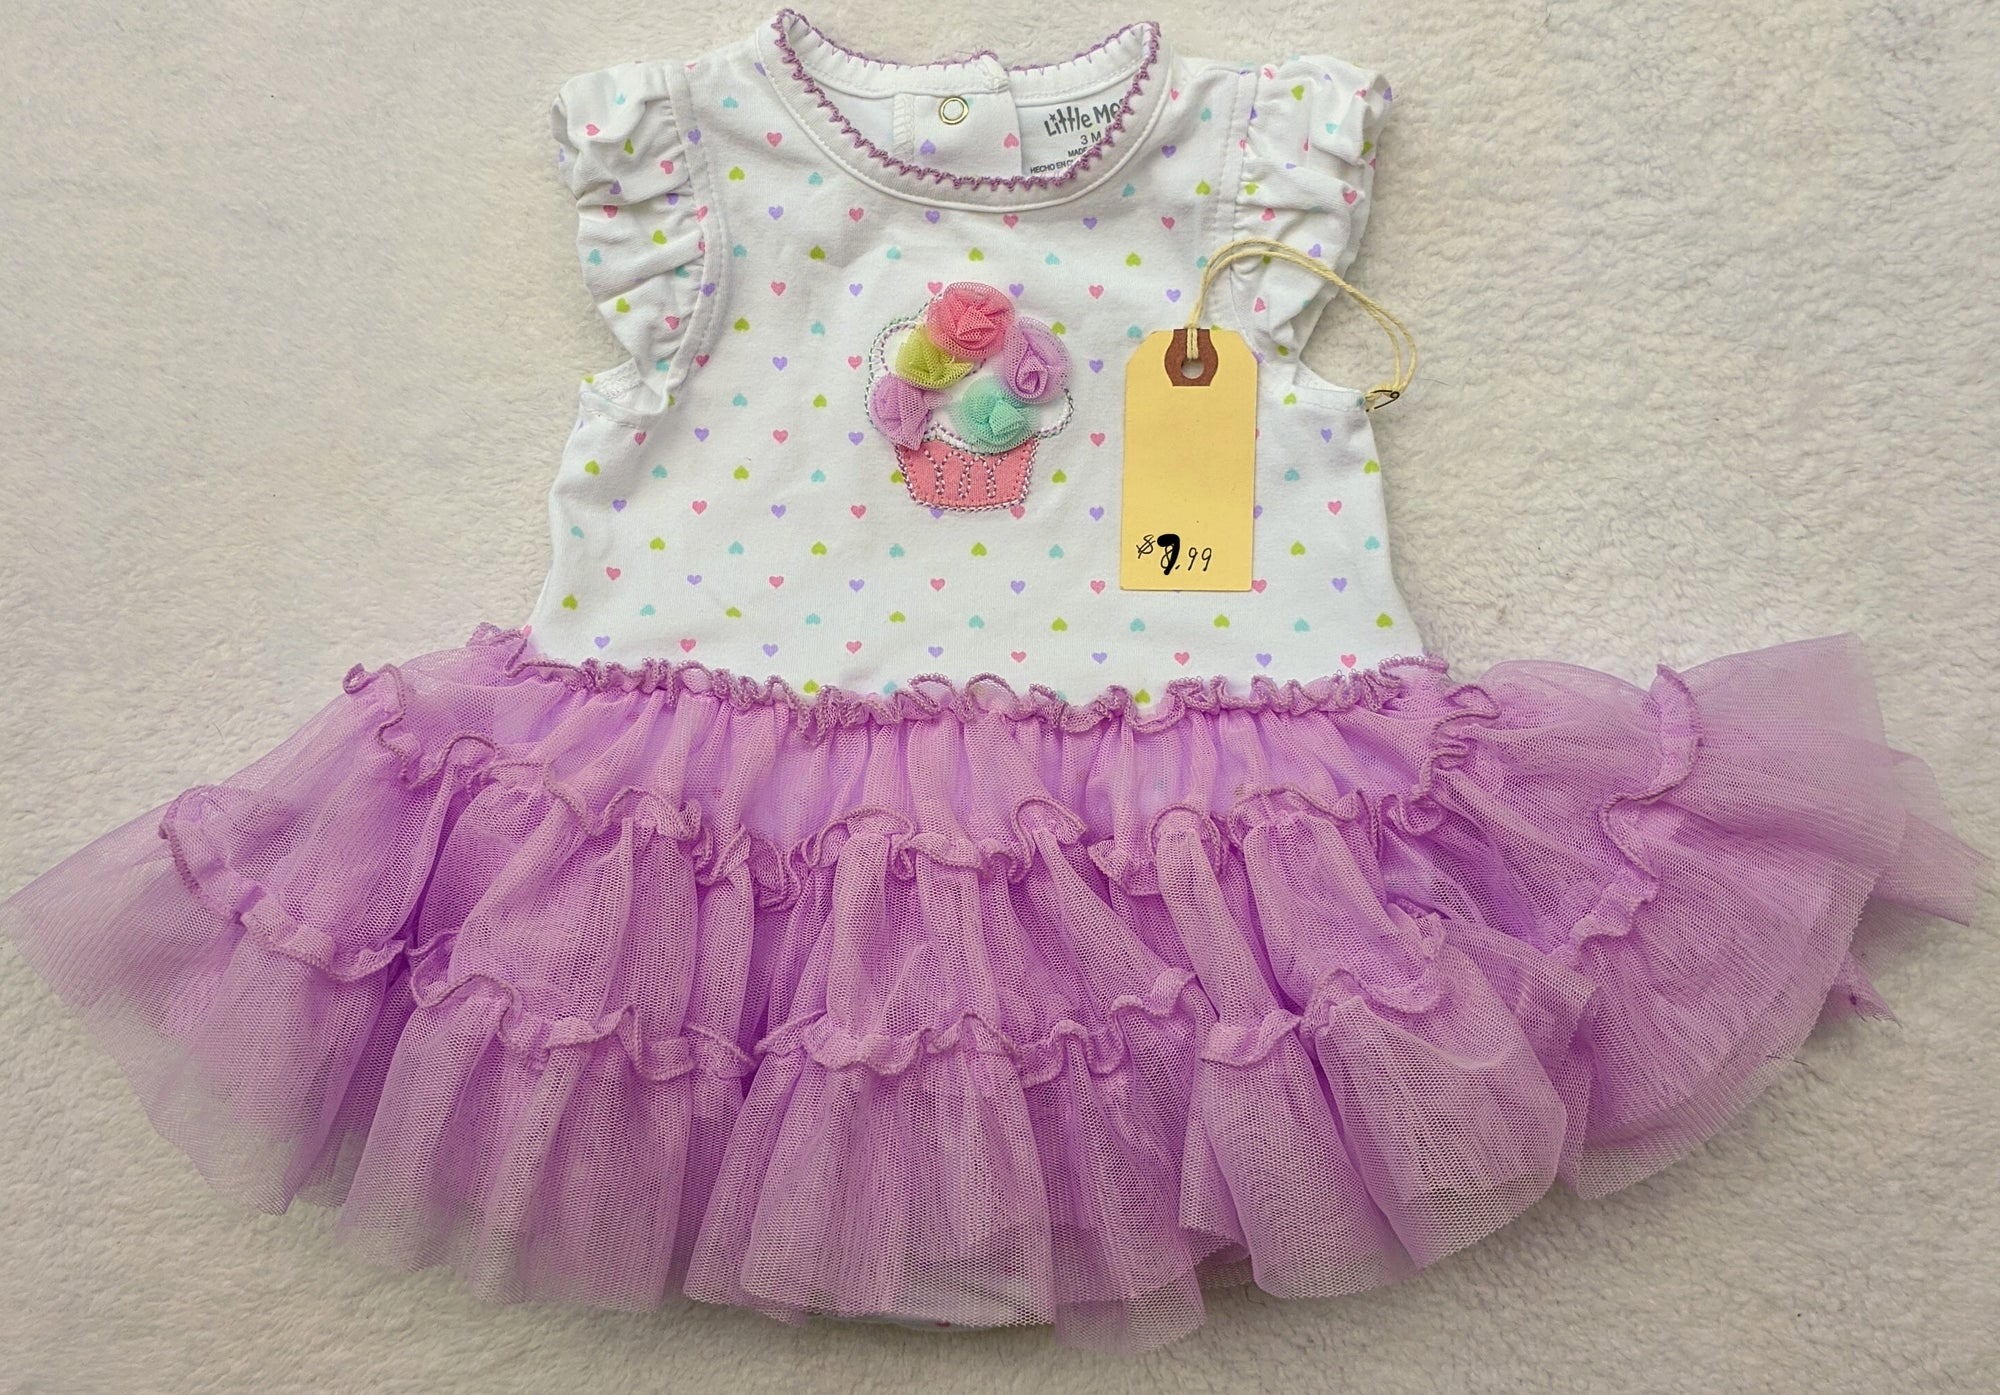 Resale 3 m Little Me Cupcake Tulle Bodysuit